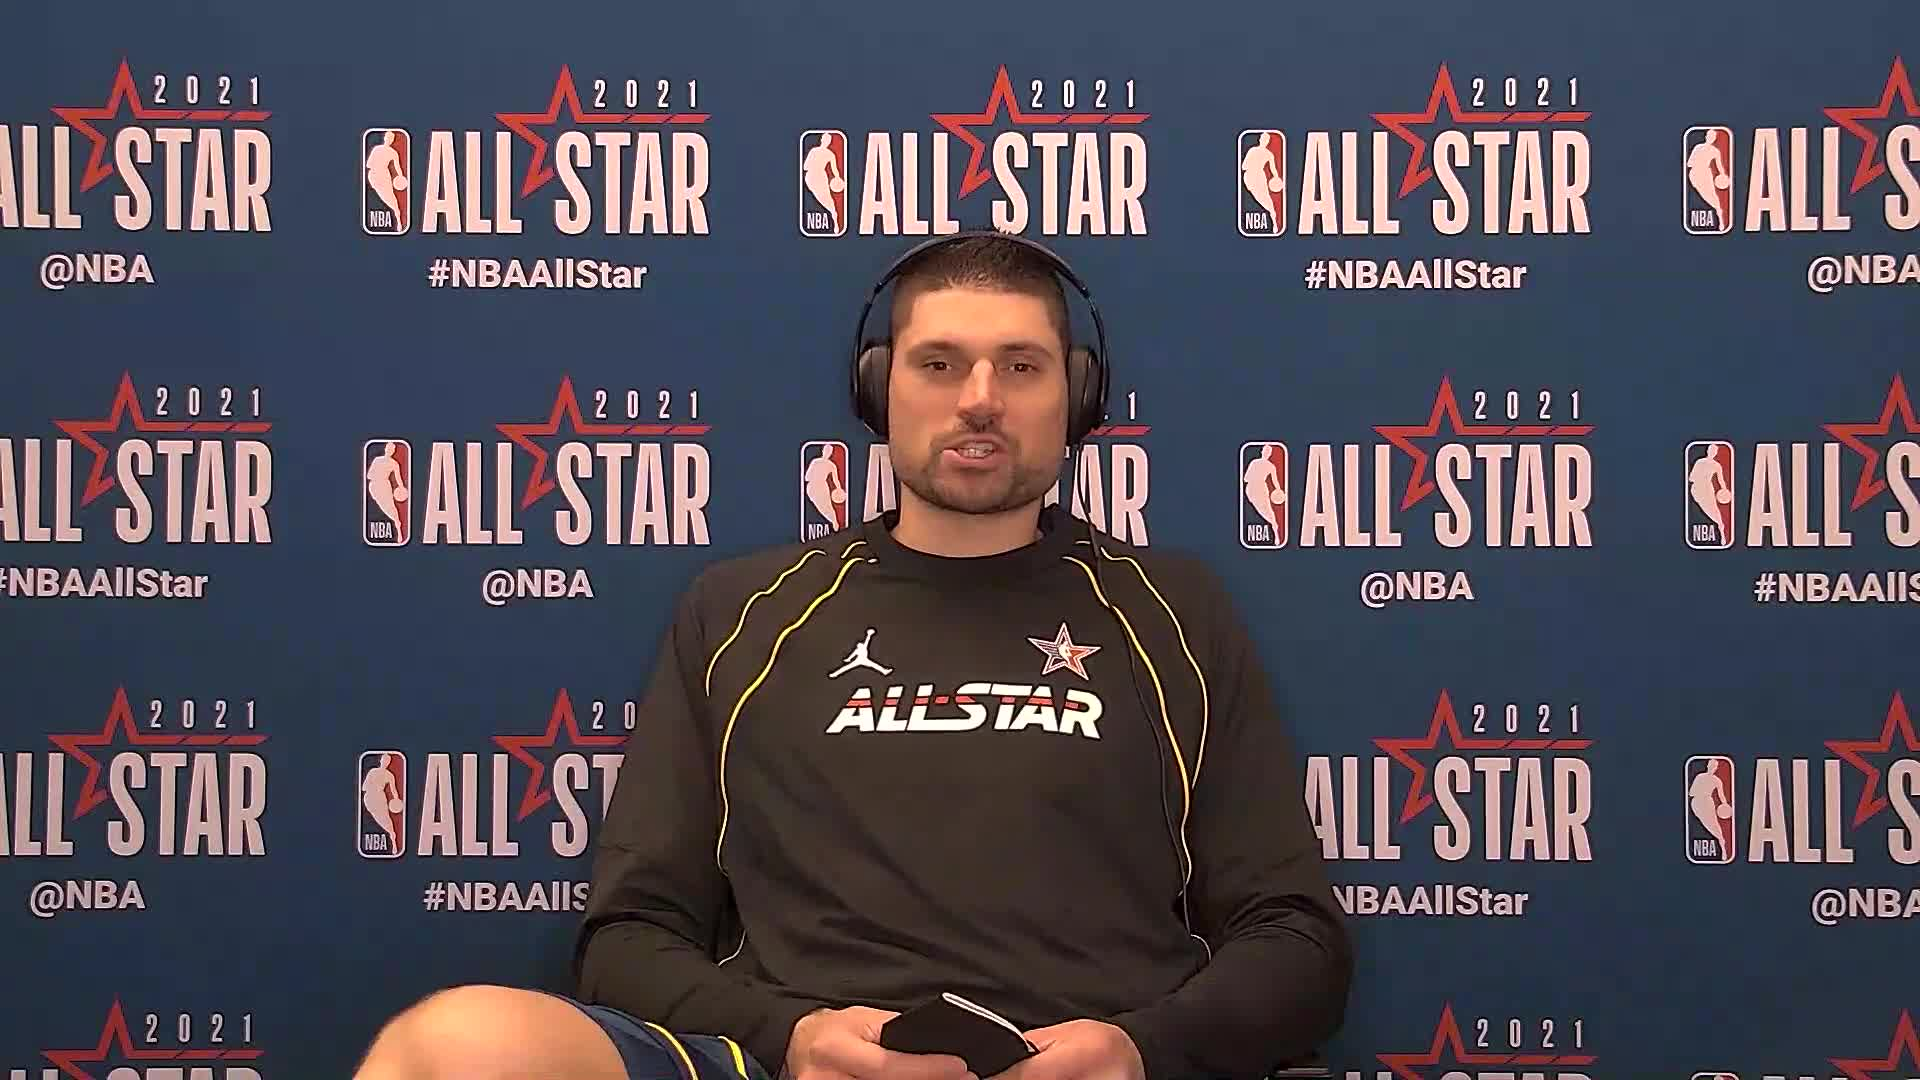 NBA All-Star Game: Nikola Vucevic